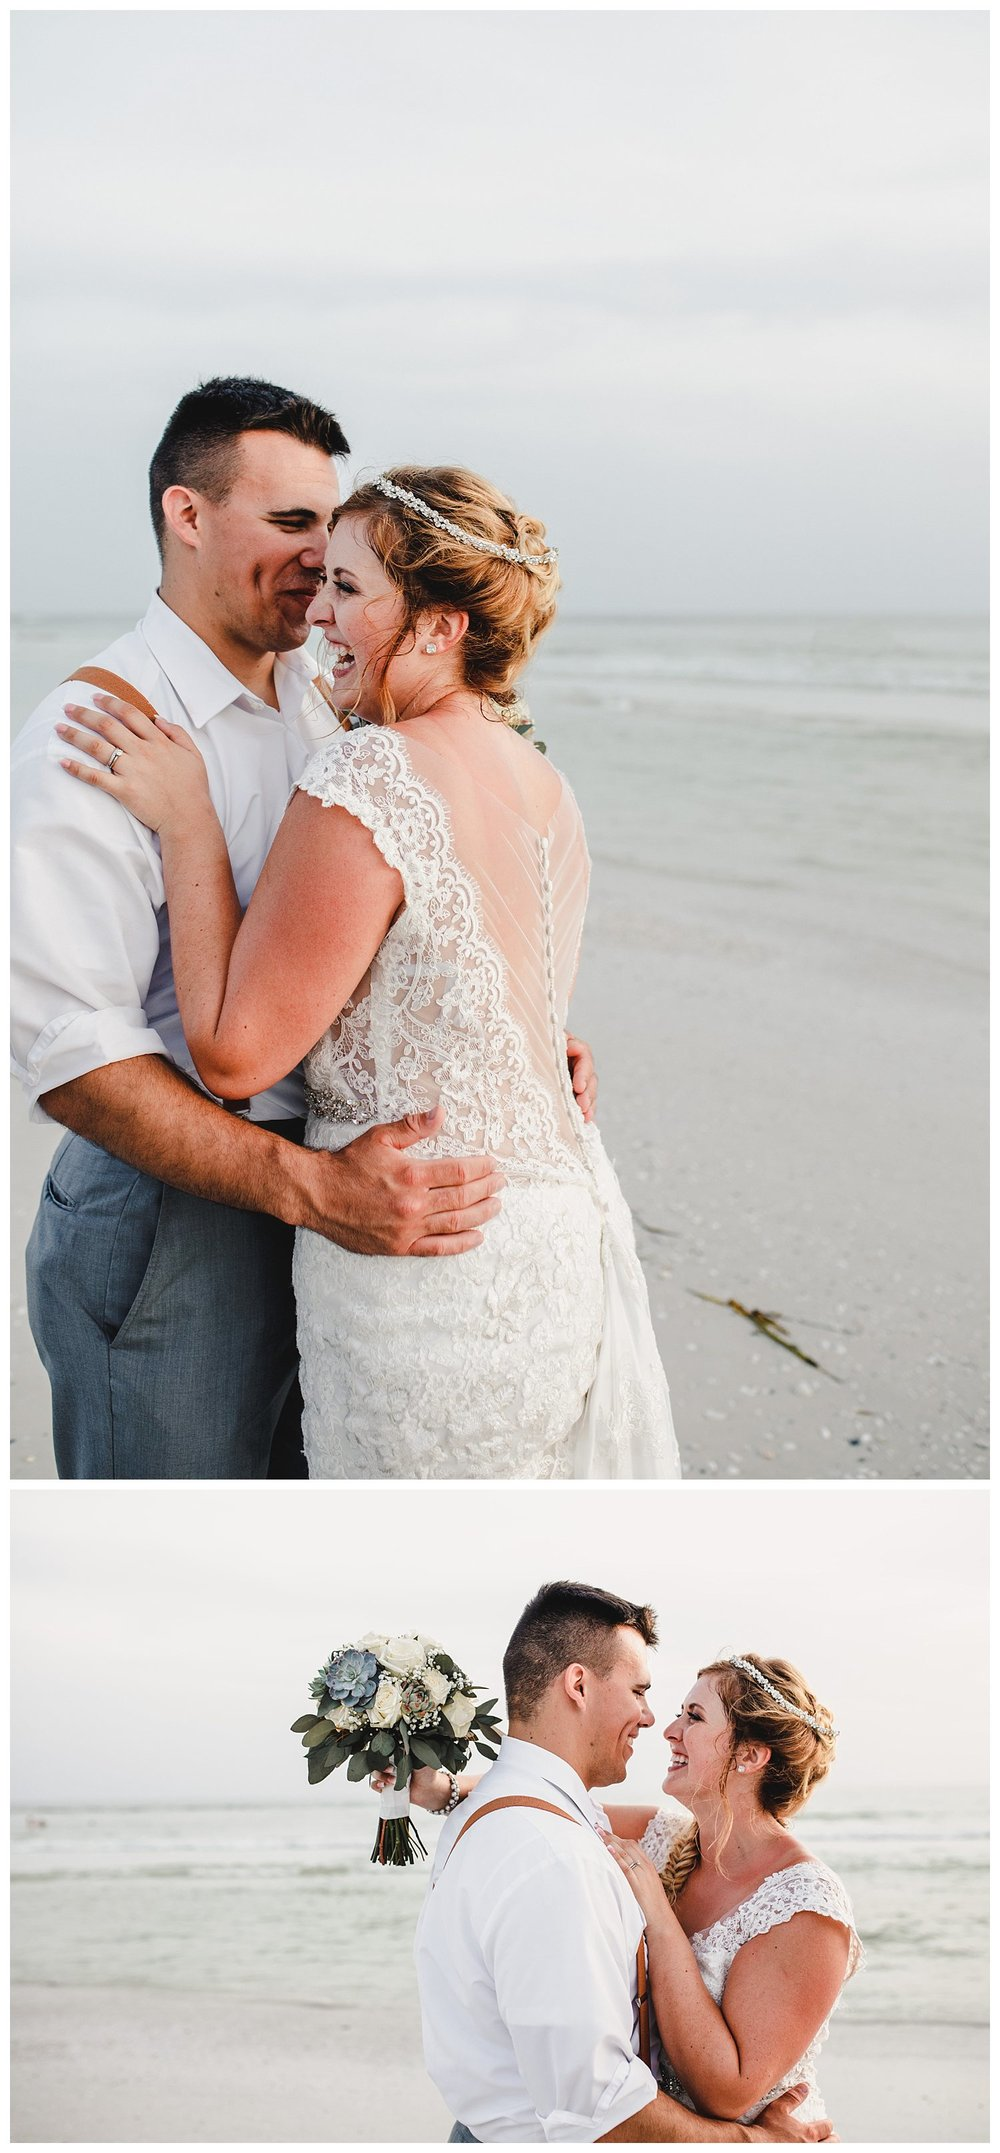 Kelsey_Diane_Photography_Destination_Wedding_Sarasota_Florida_Beach_Wedding_Alex_Austin_0680.jpg